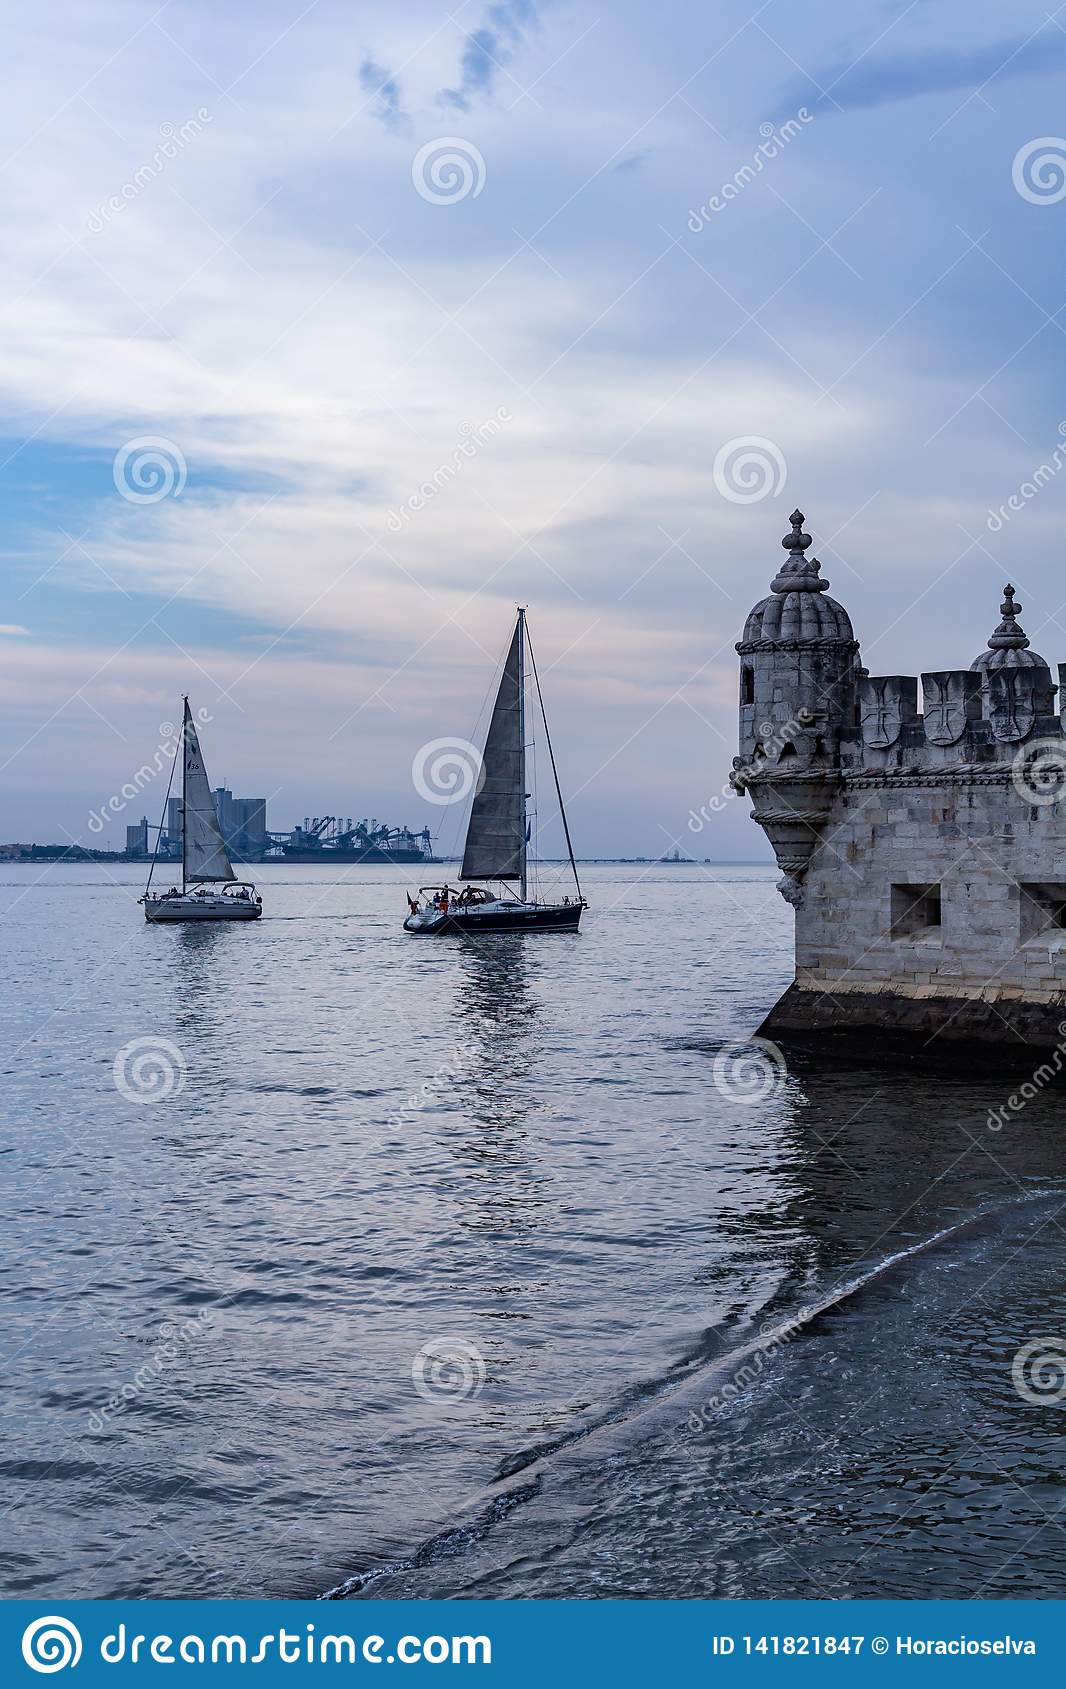 Lisbon Portugal. May 7, 2018. View of a portion of the famous tower of Bethlehem. Next to it, small sailboats sail on the river